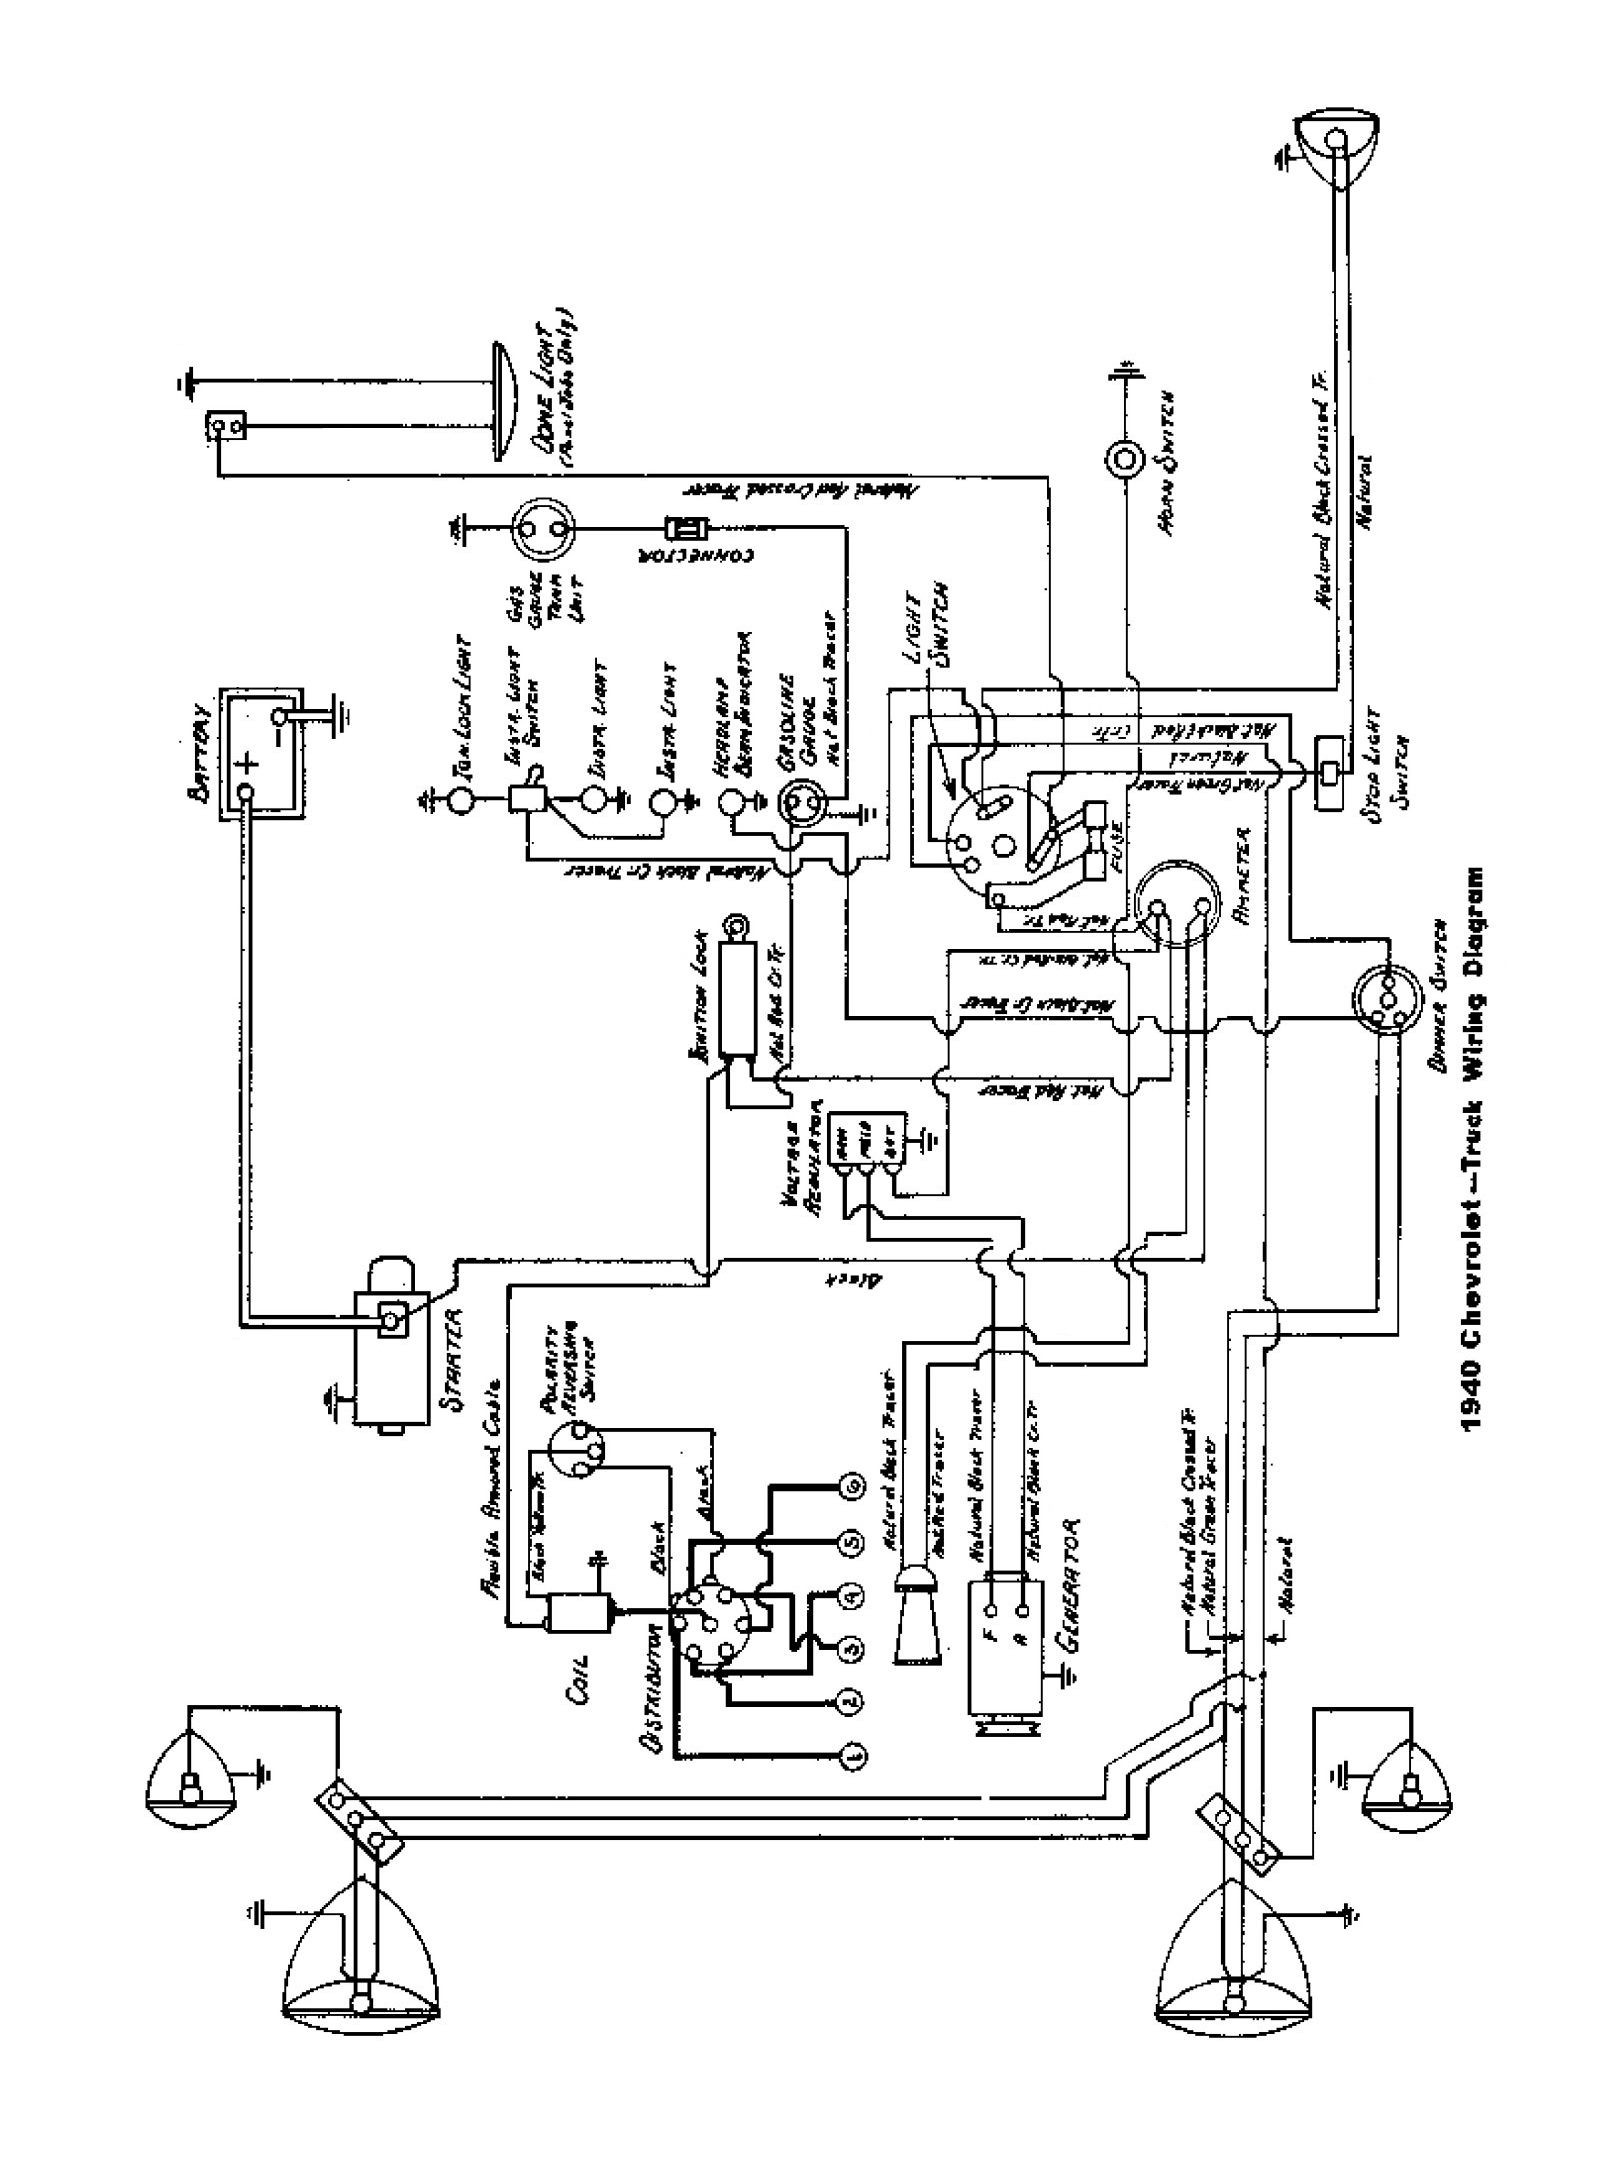 hight resolution of 1953 chevy coil wiring wiring diagram schemawire diagram for 1957 chevy convertible wiring library diagram box